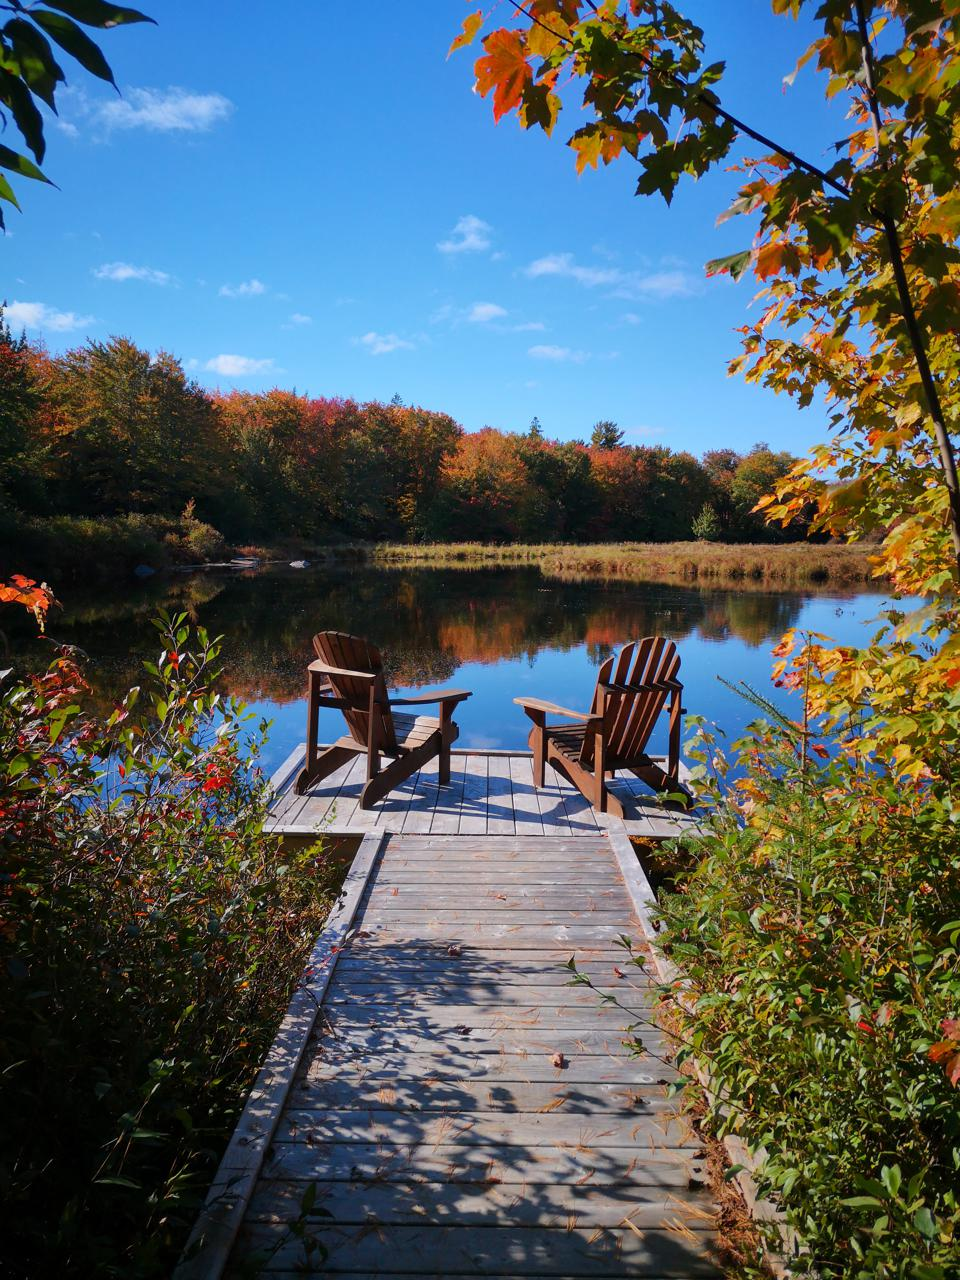 Trout Point Lodge in the autumn